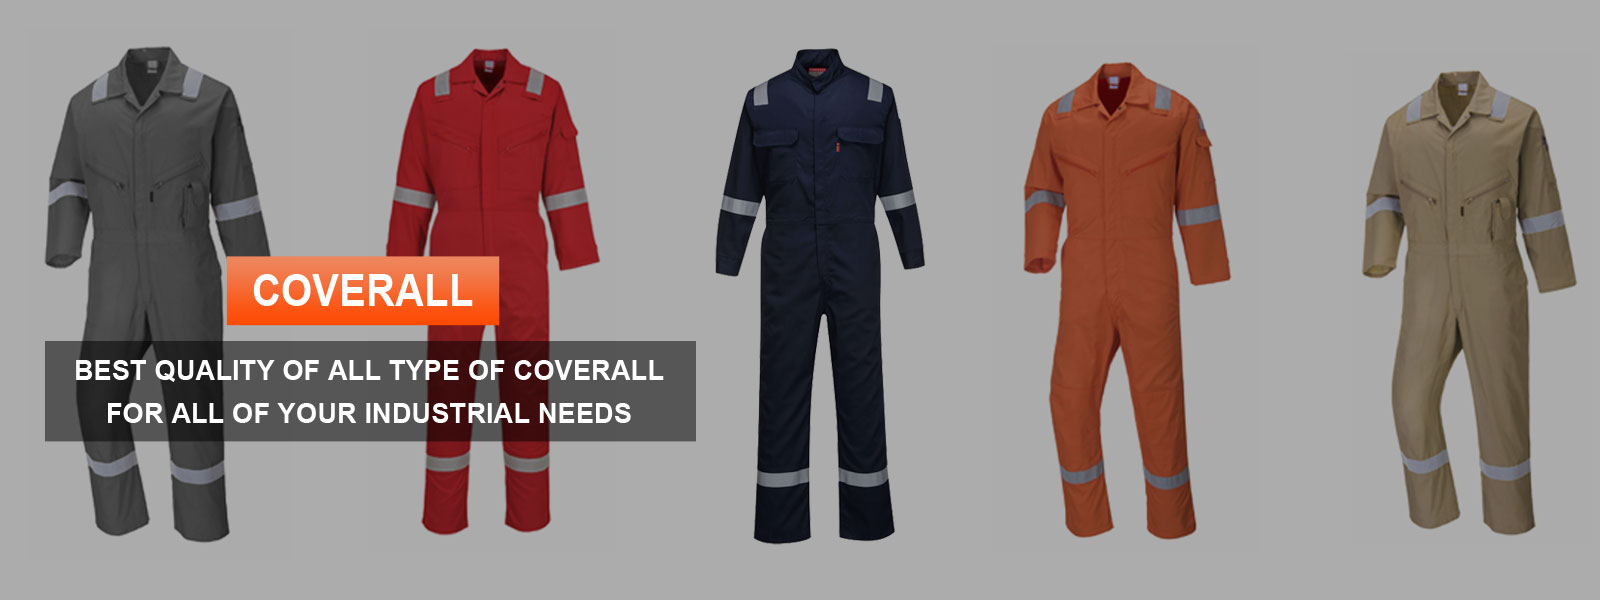 Coverall Manufacturers in Haryana